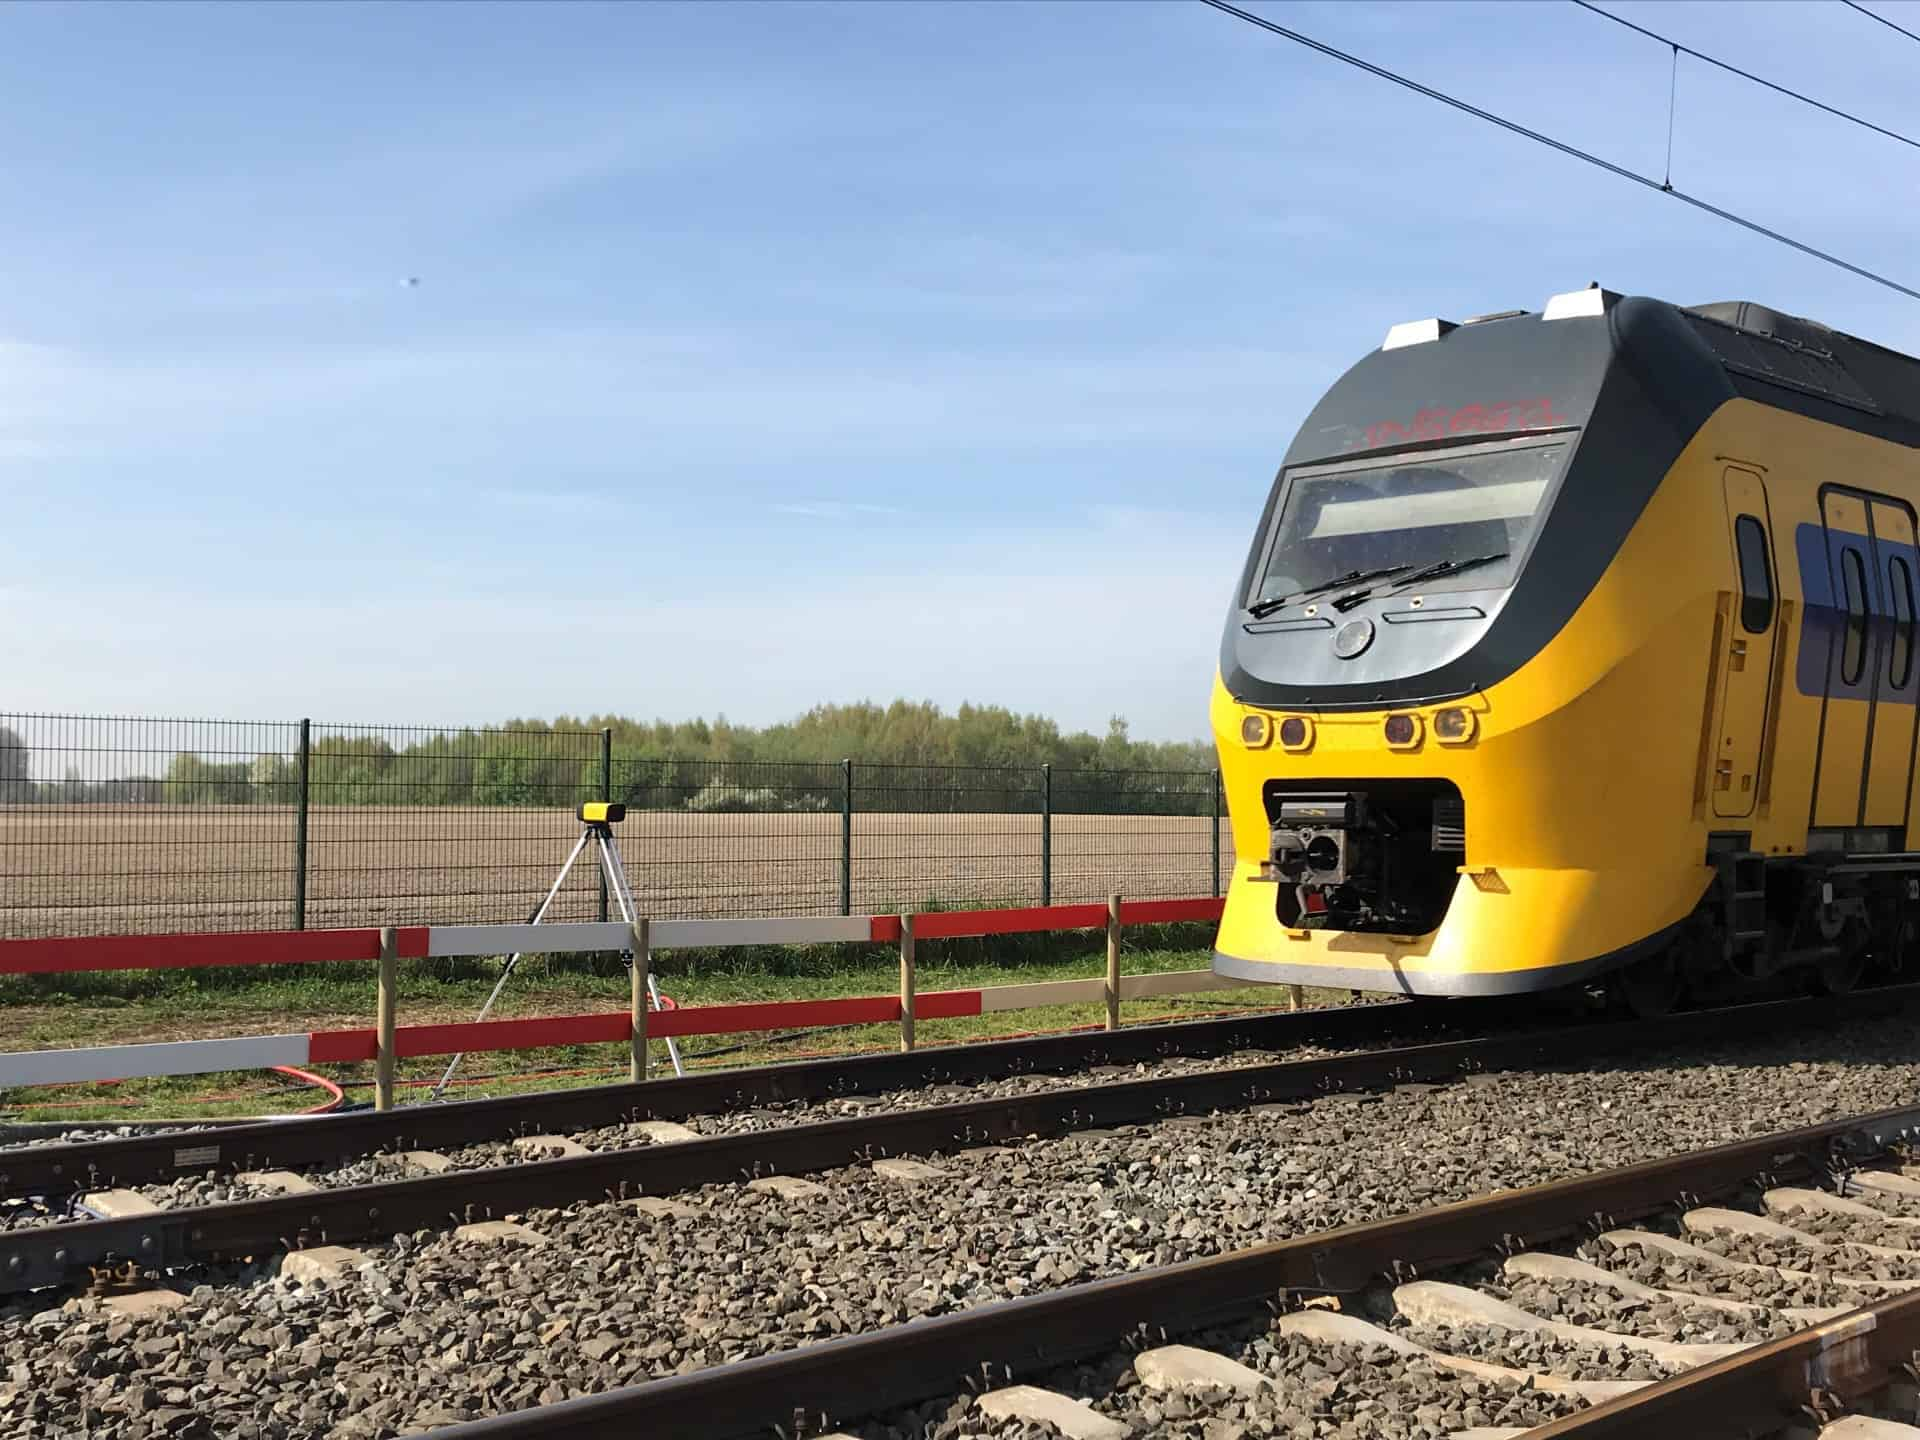 TWS 3000 detects train